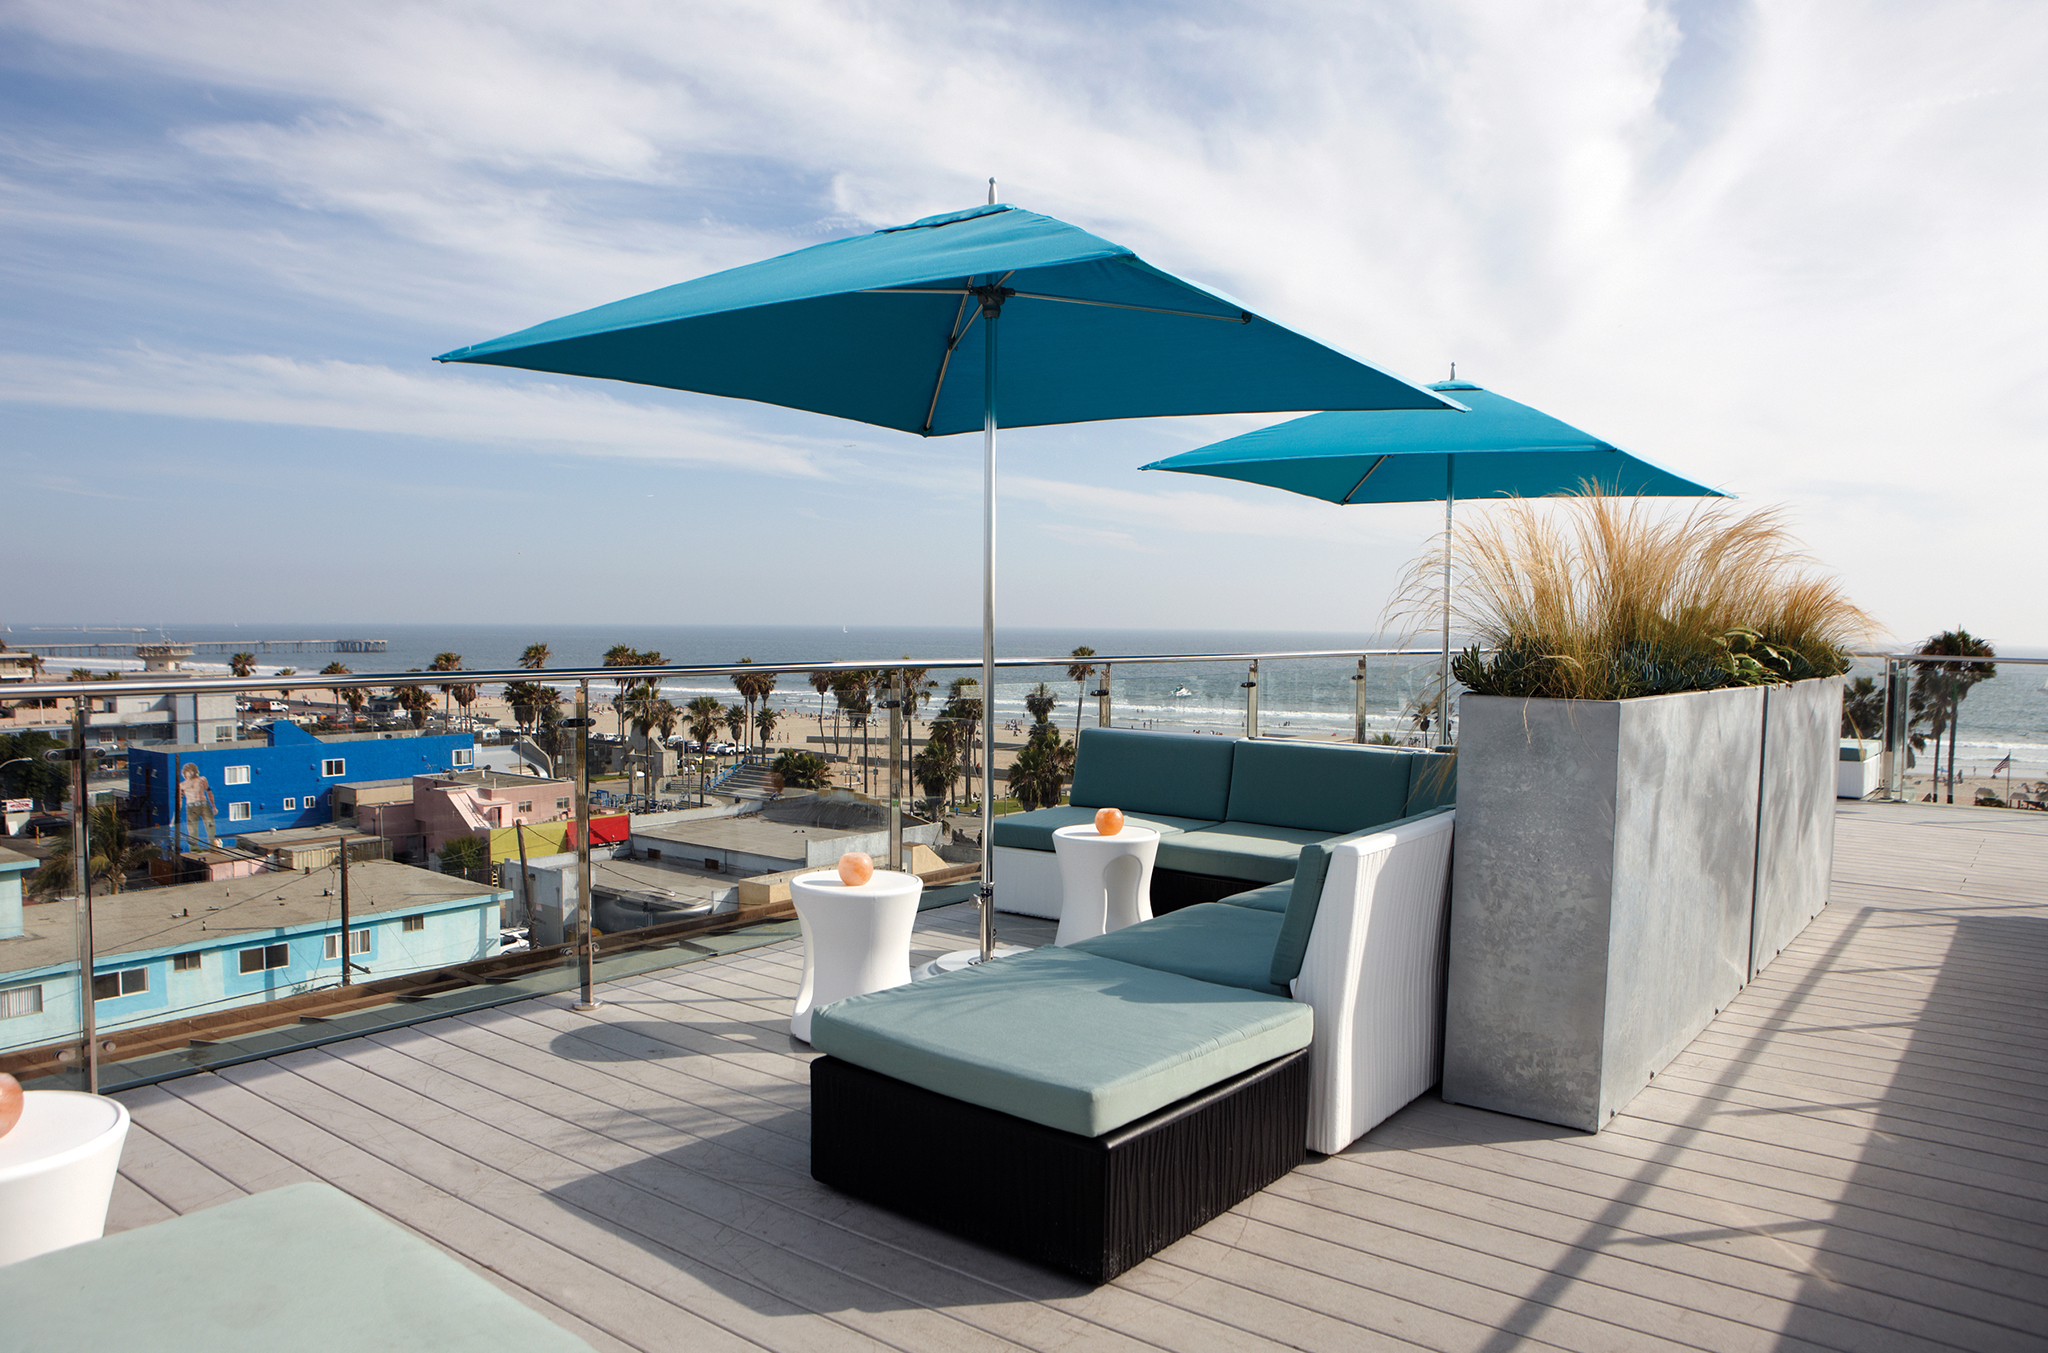 Sip oceanside drinks at the best rooftop bars